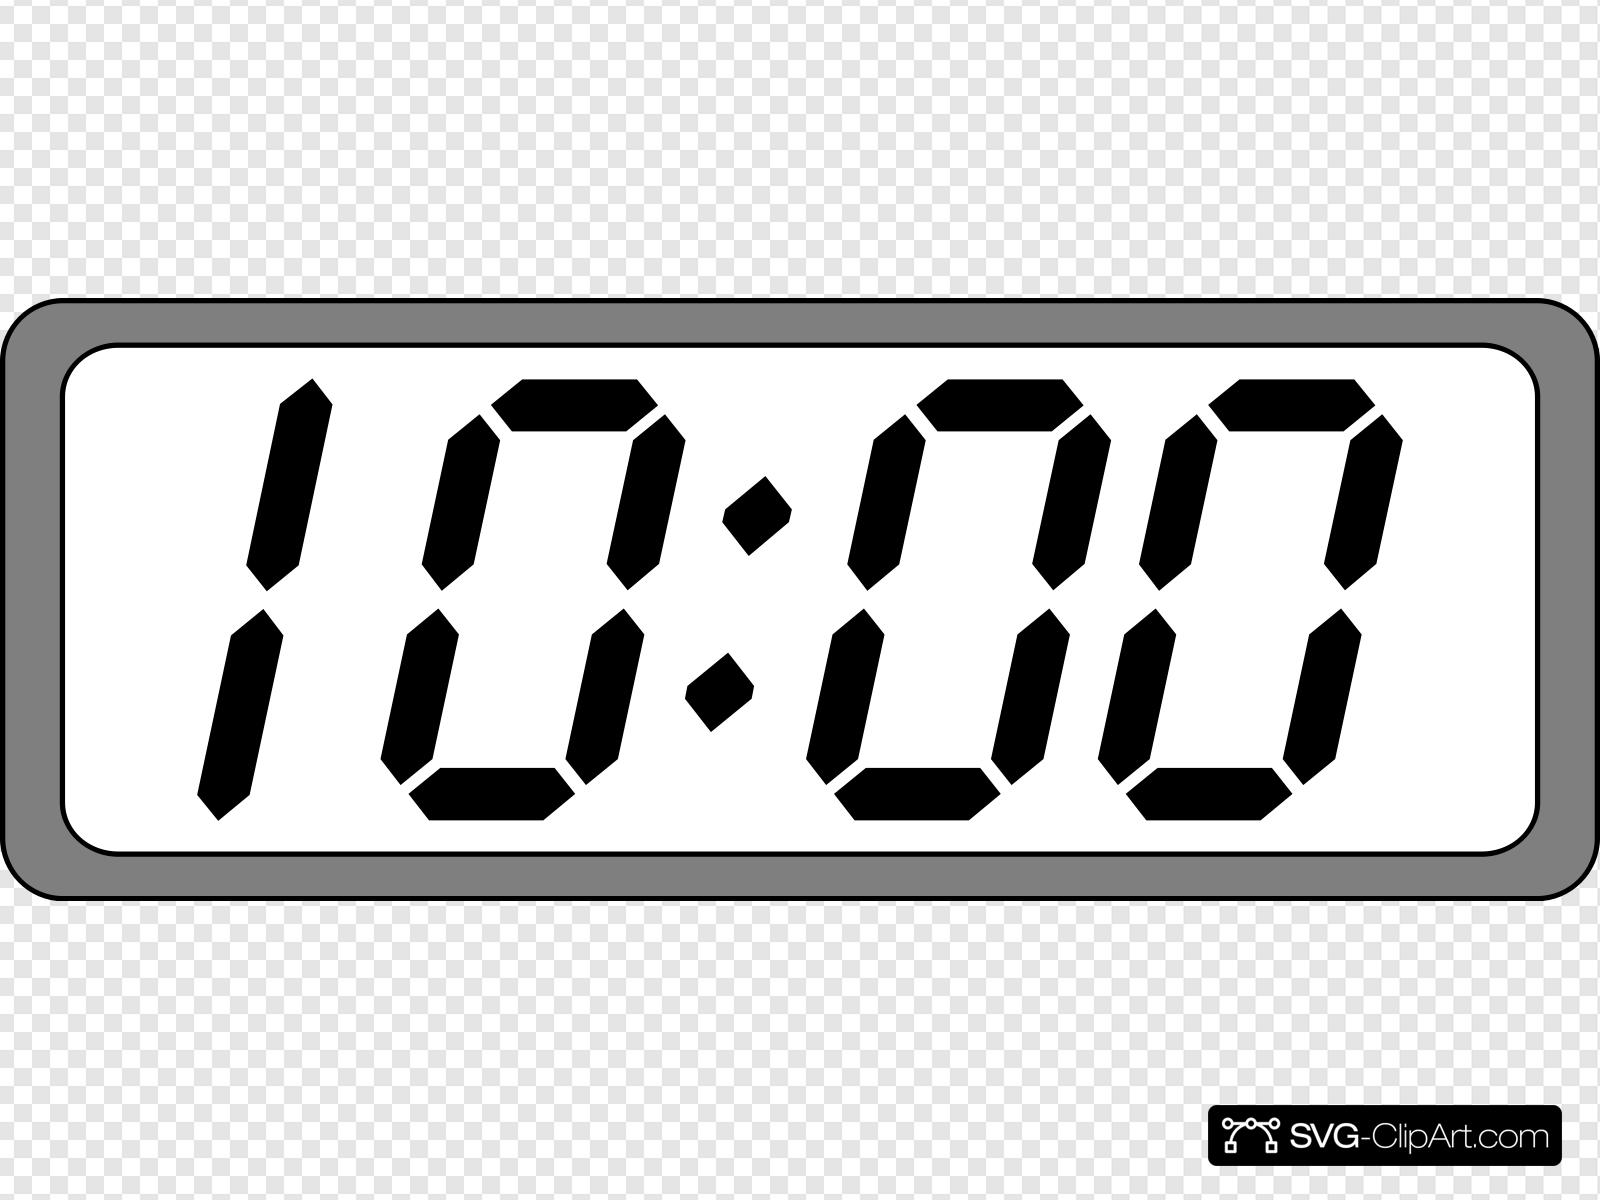 Digital Clock Black & White Clip art, Icon and SVG.